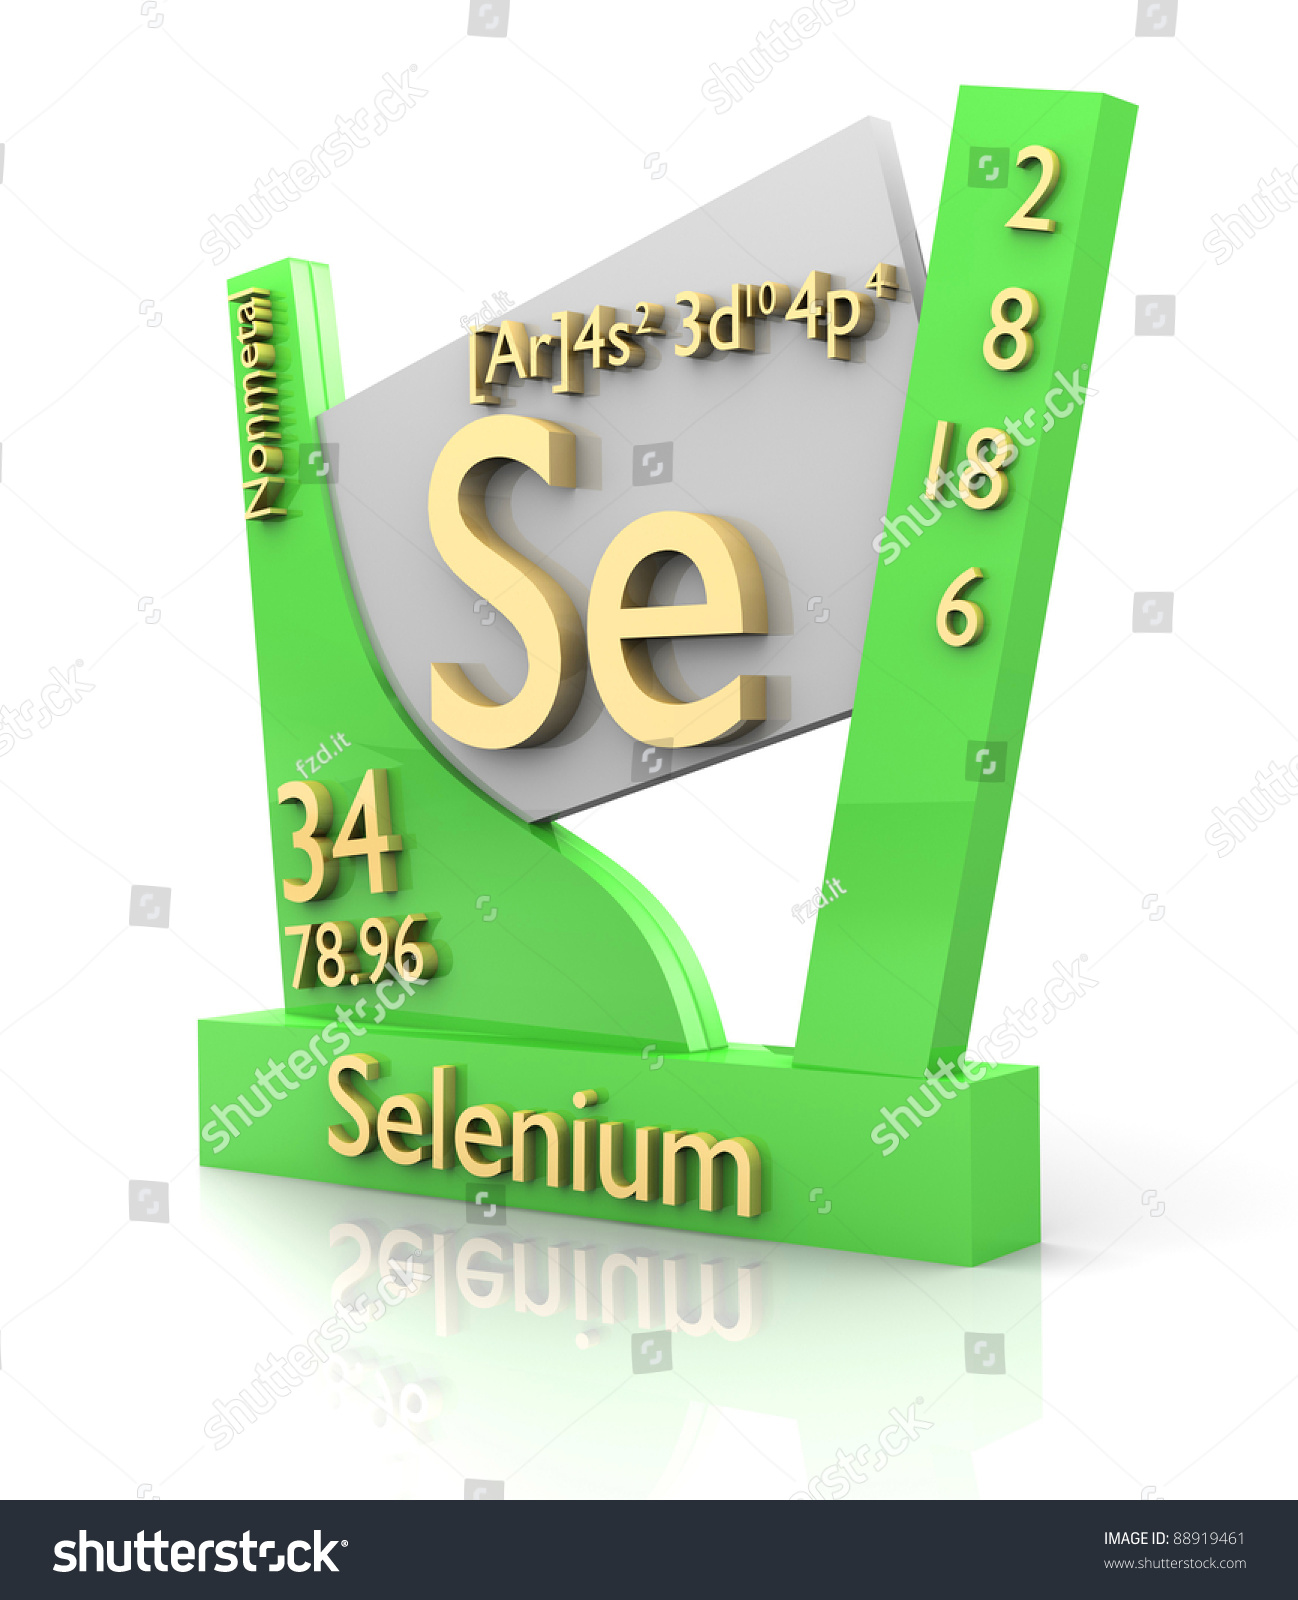 Selenium form periodic table elements 3d stock illustration selenium form periodic table of elements 3d made gamestrikefo Images